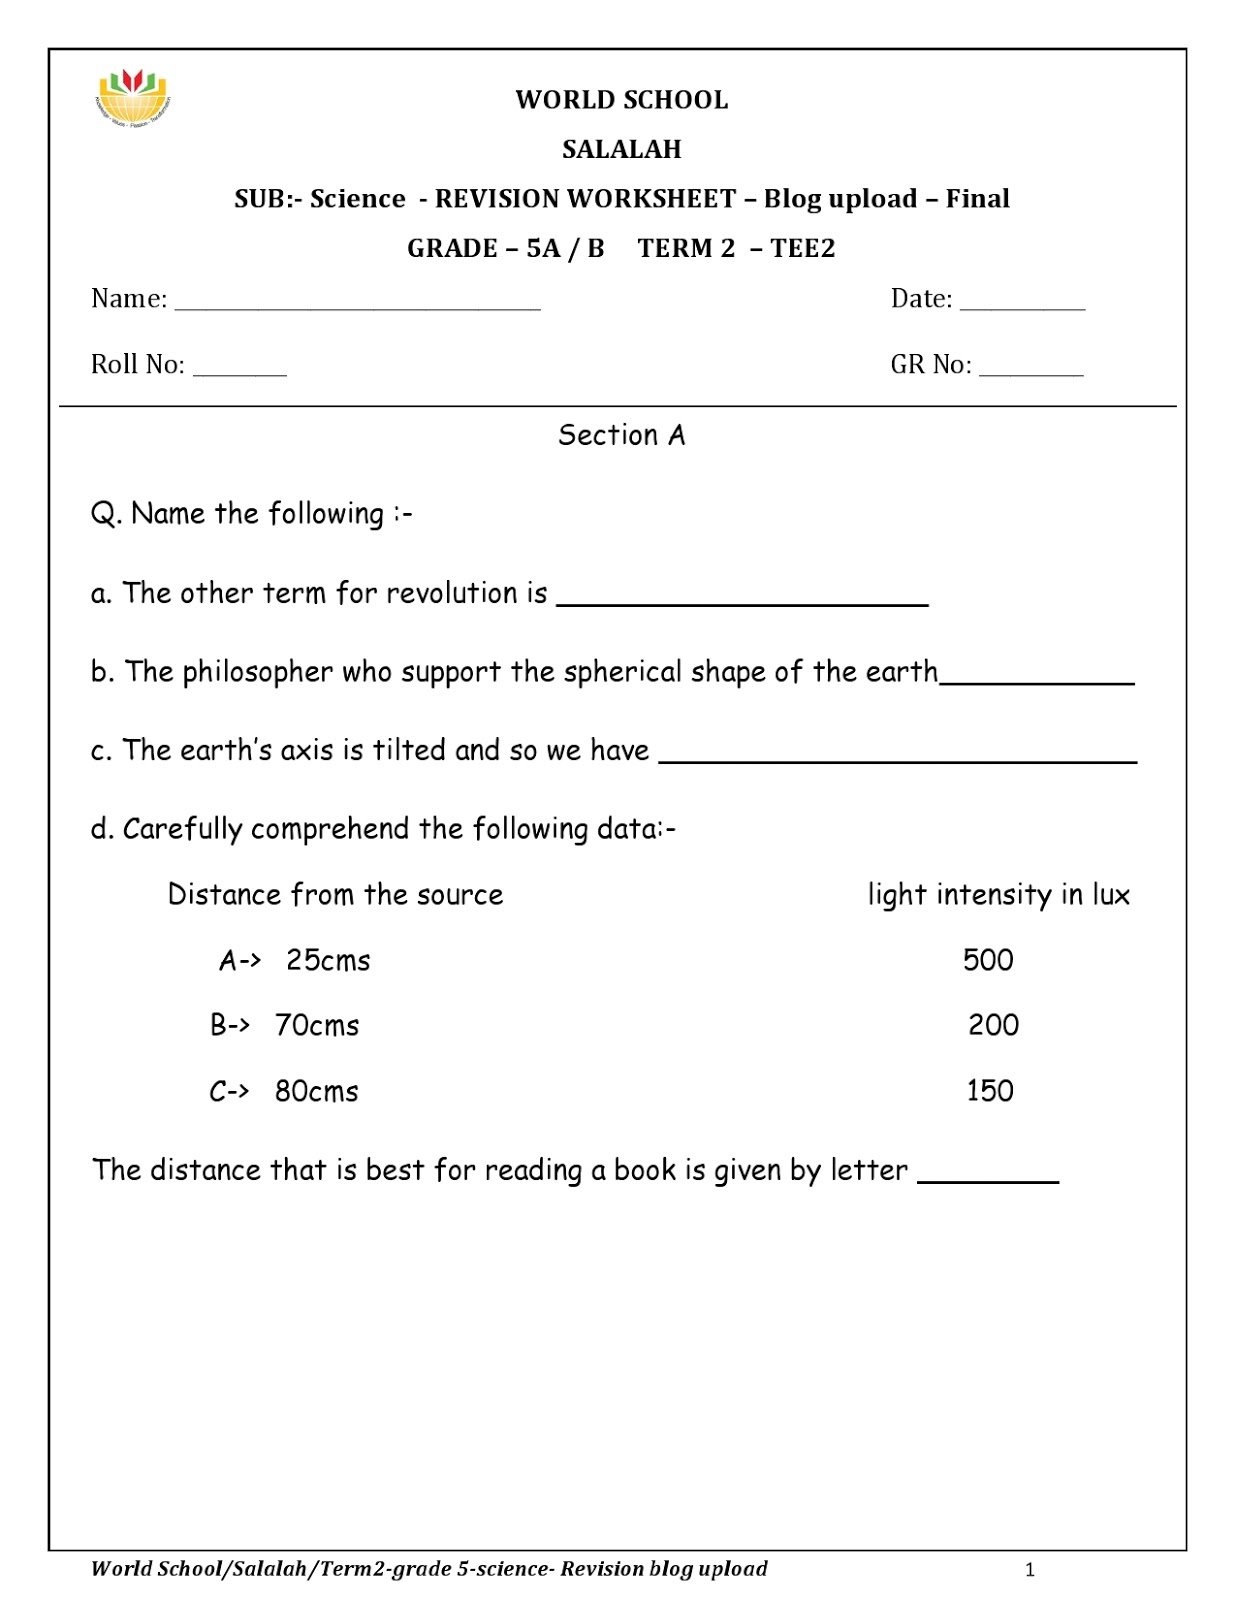 small resolution of Revision Worksheets for Grade 5 as on 13-05-2019   WORLD SCHOOL OMAN